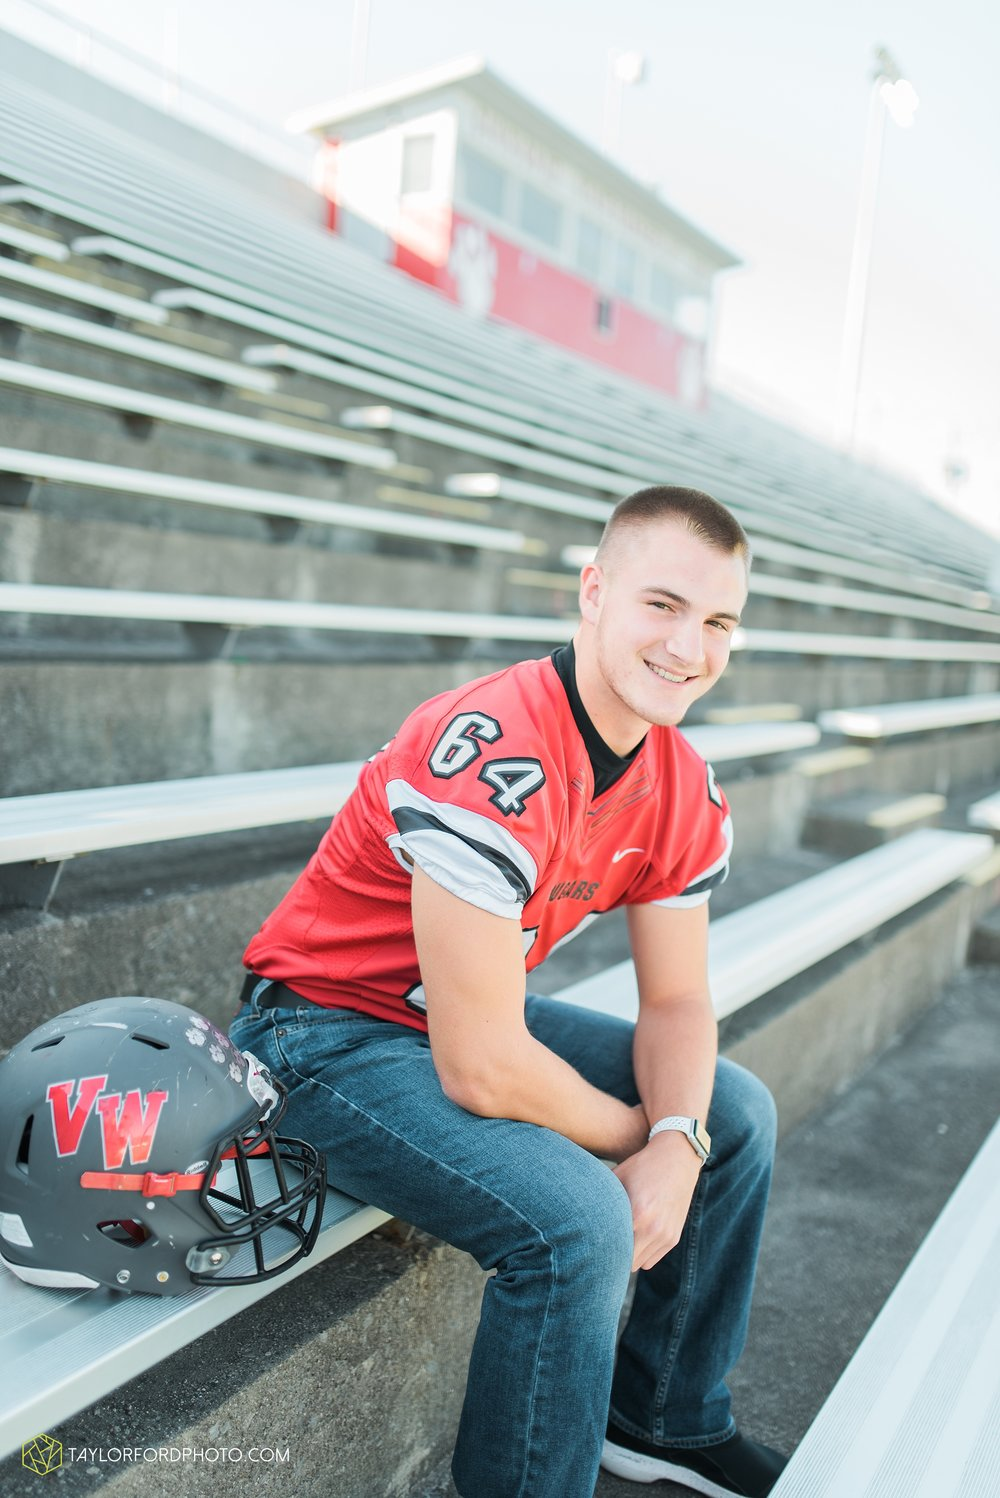 van-wert-ohio-fort-wayne-indiana-senior-photographer-Taylor-Ford-Photography-Ohio-Indiana-van-wert-high-school_2494.jpg